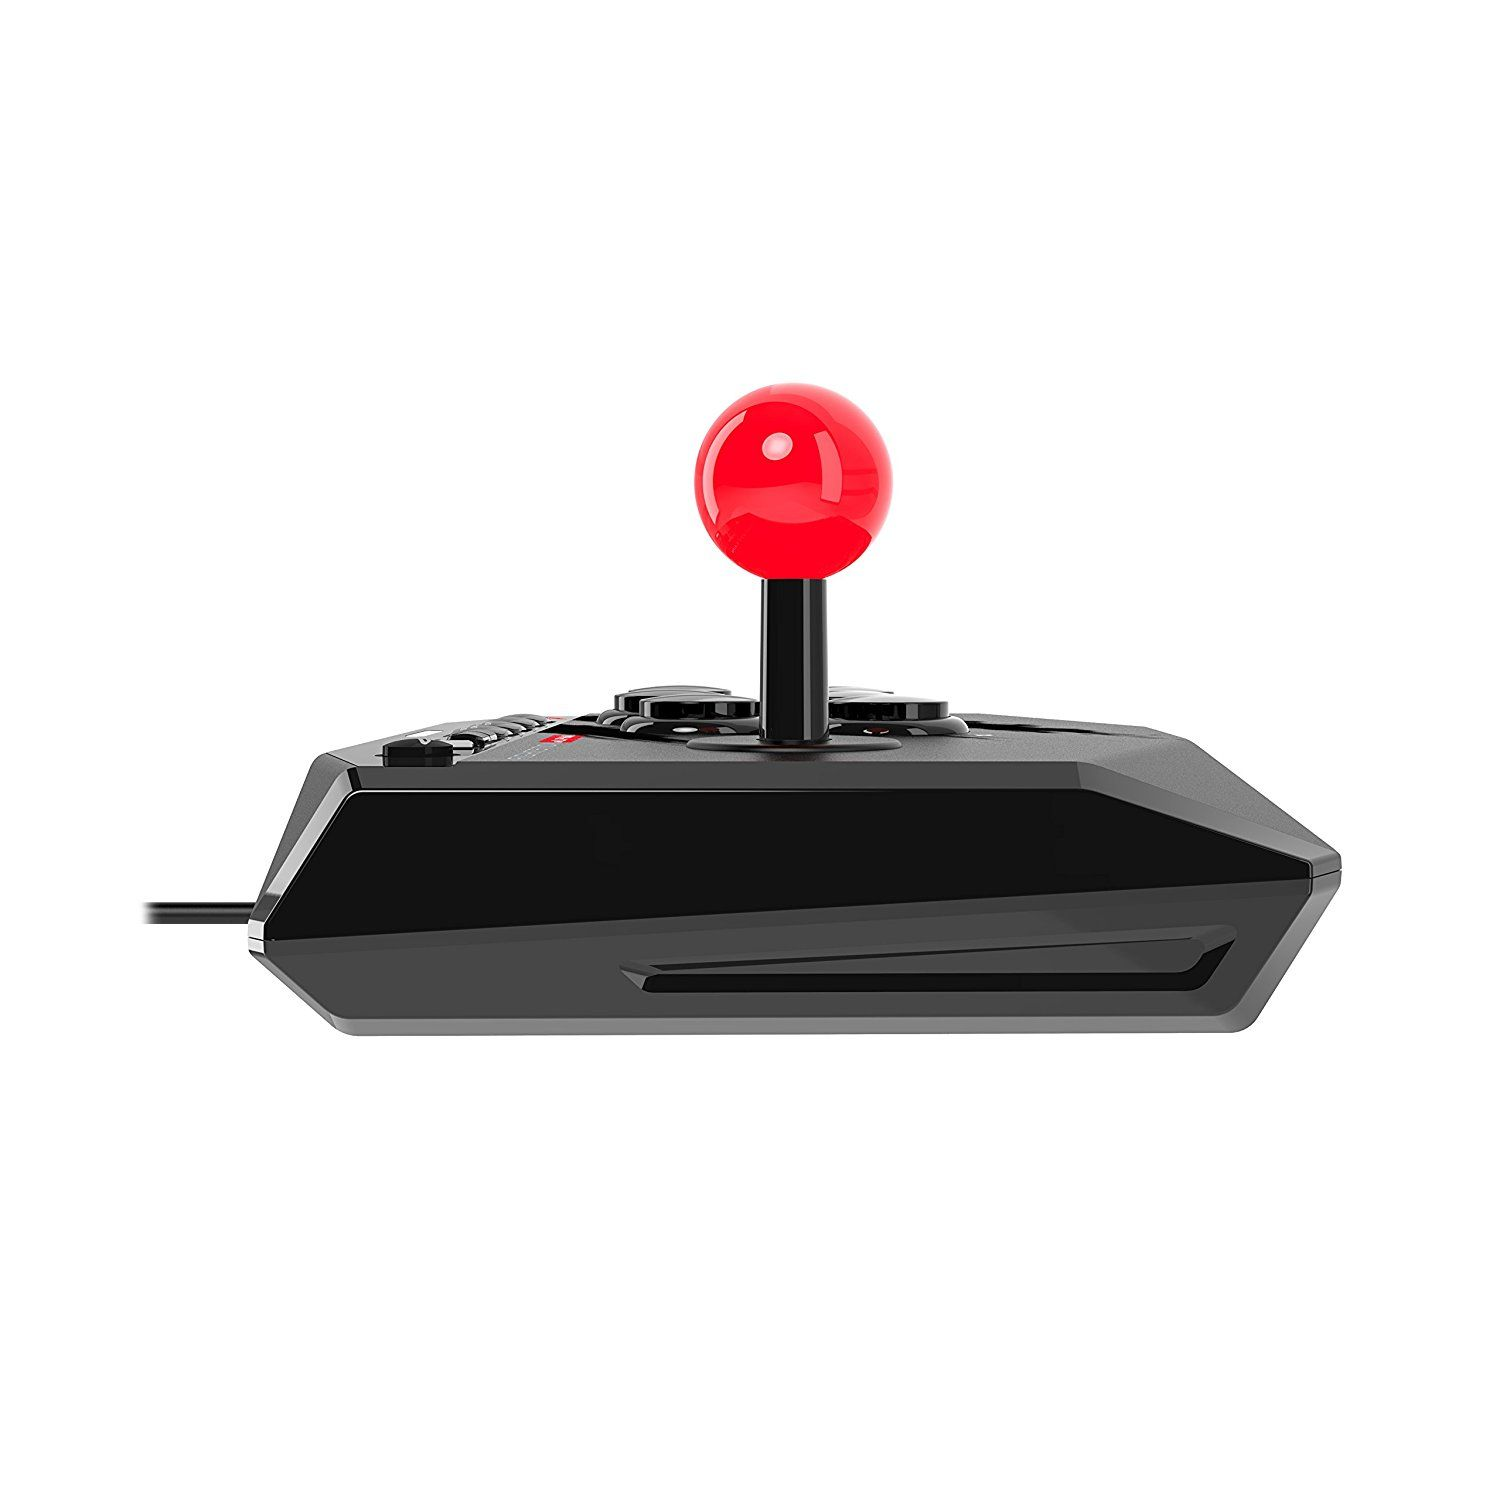 Аркейд стик Alpha Mad Catz, FightStick (PS4/PS3) - 4